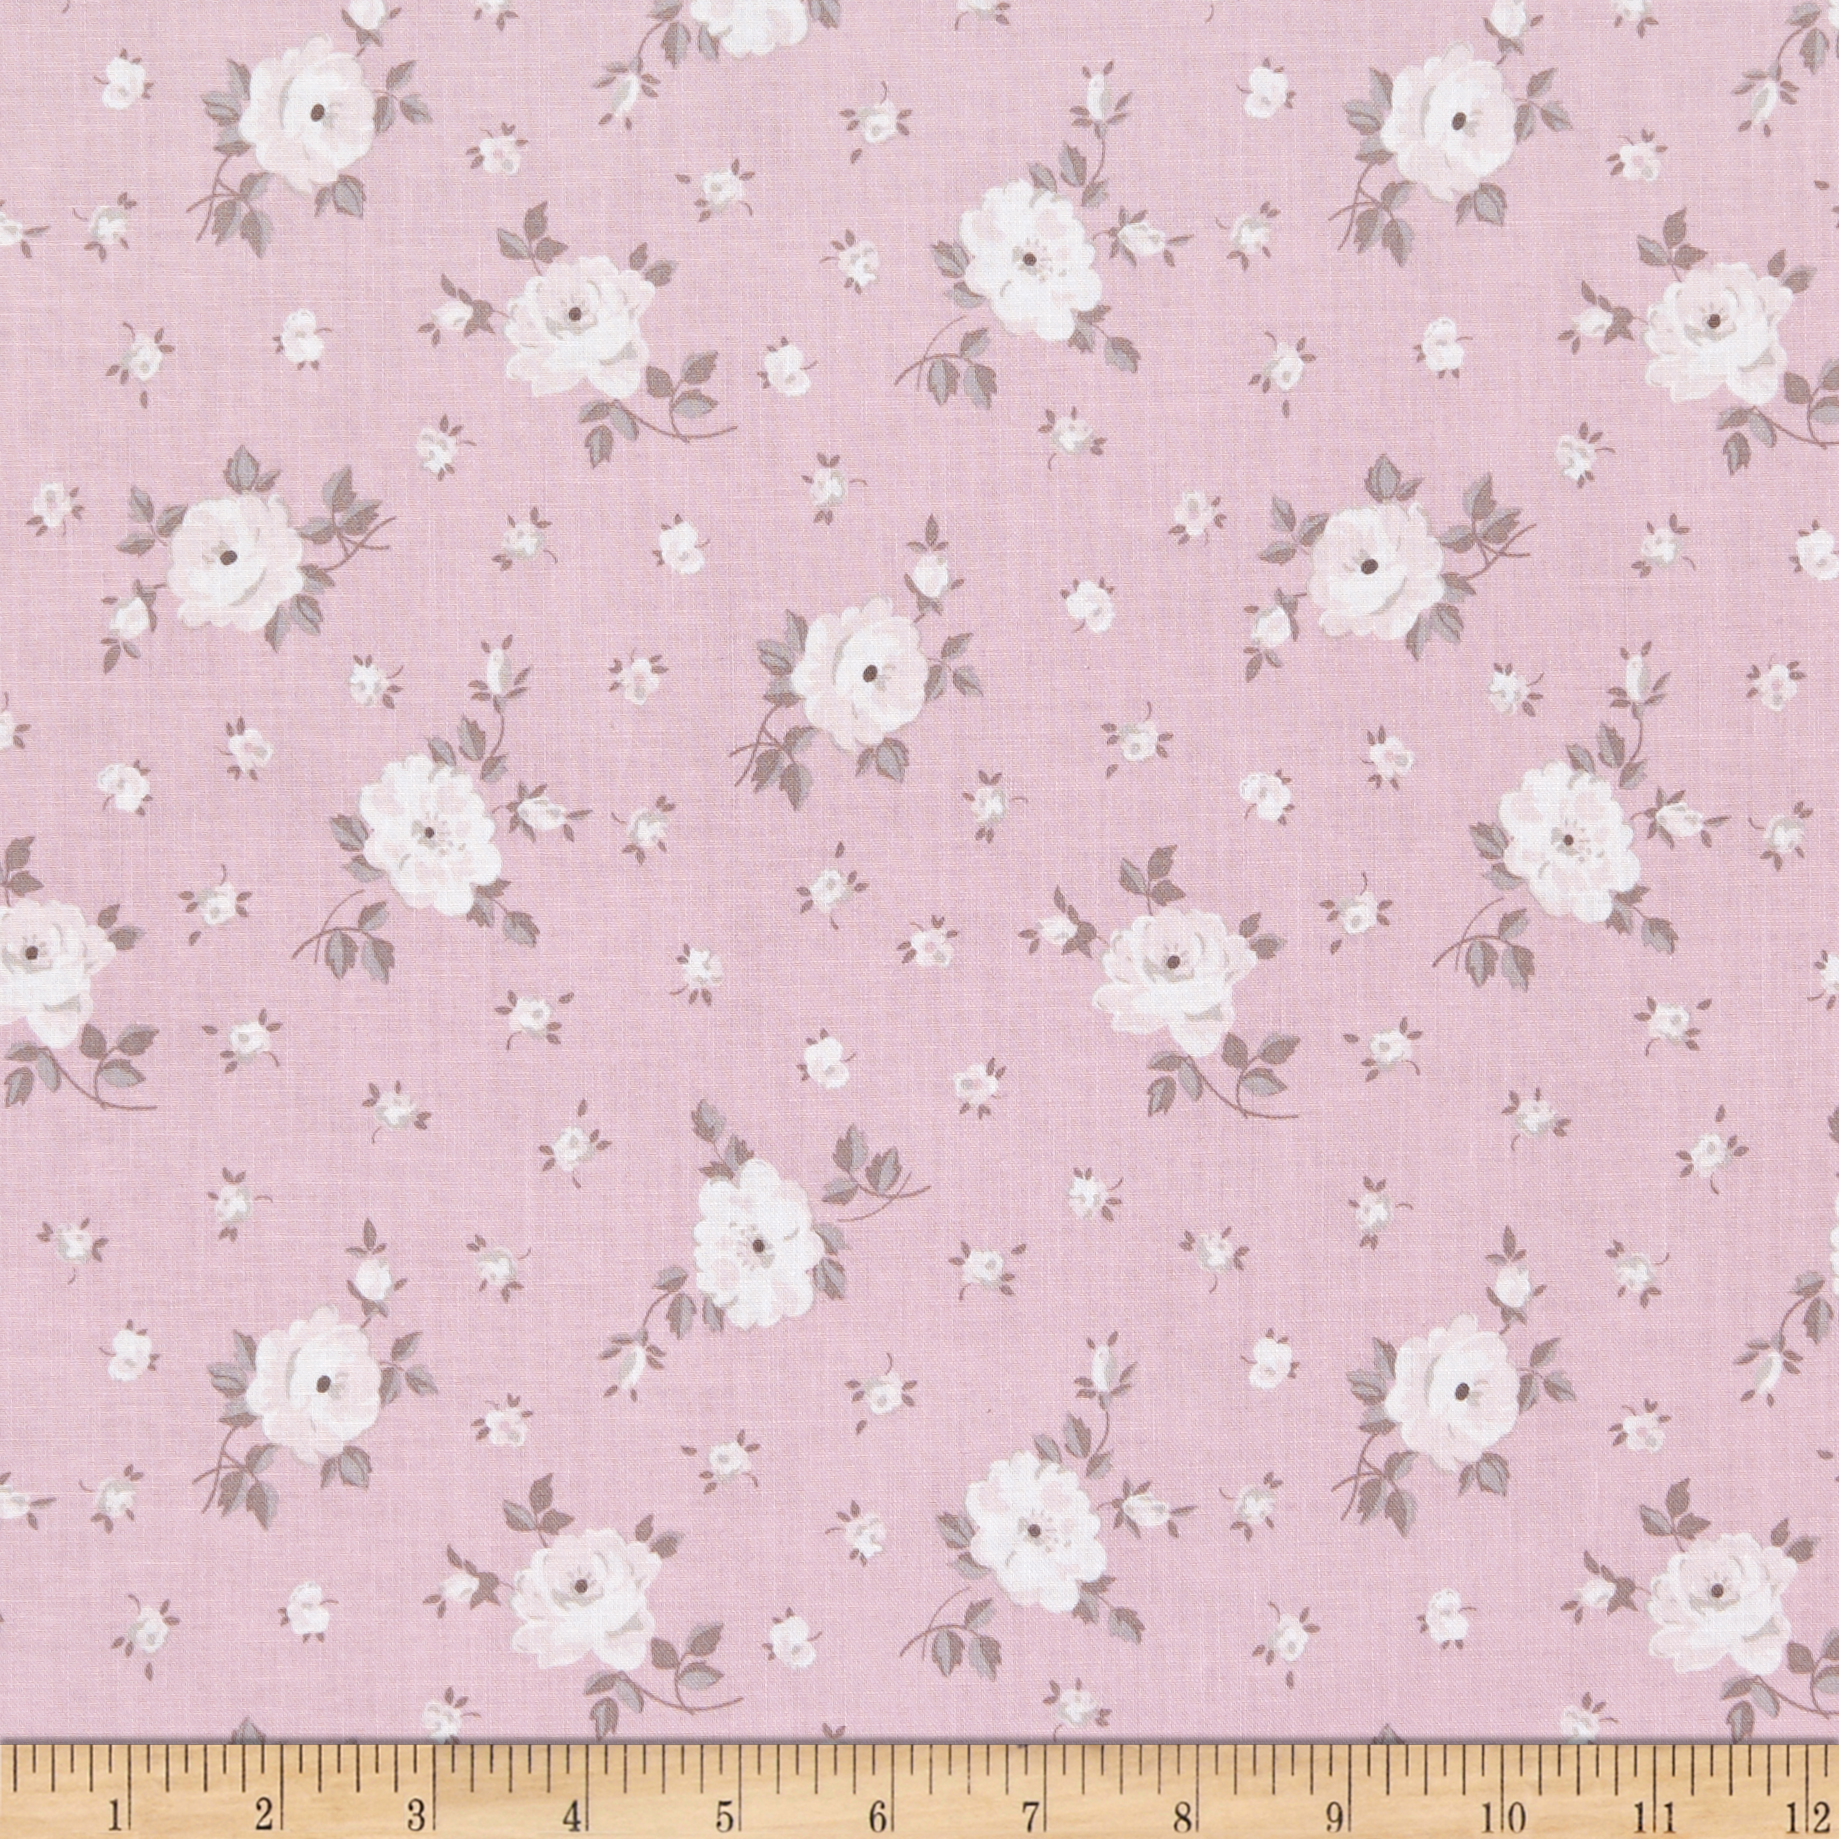 INOpets.com Anything for Pets Parents & Their Pets Penny Rose Rose Garden Garden Pink Fabric